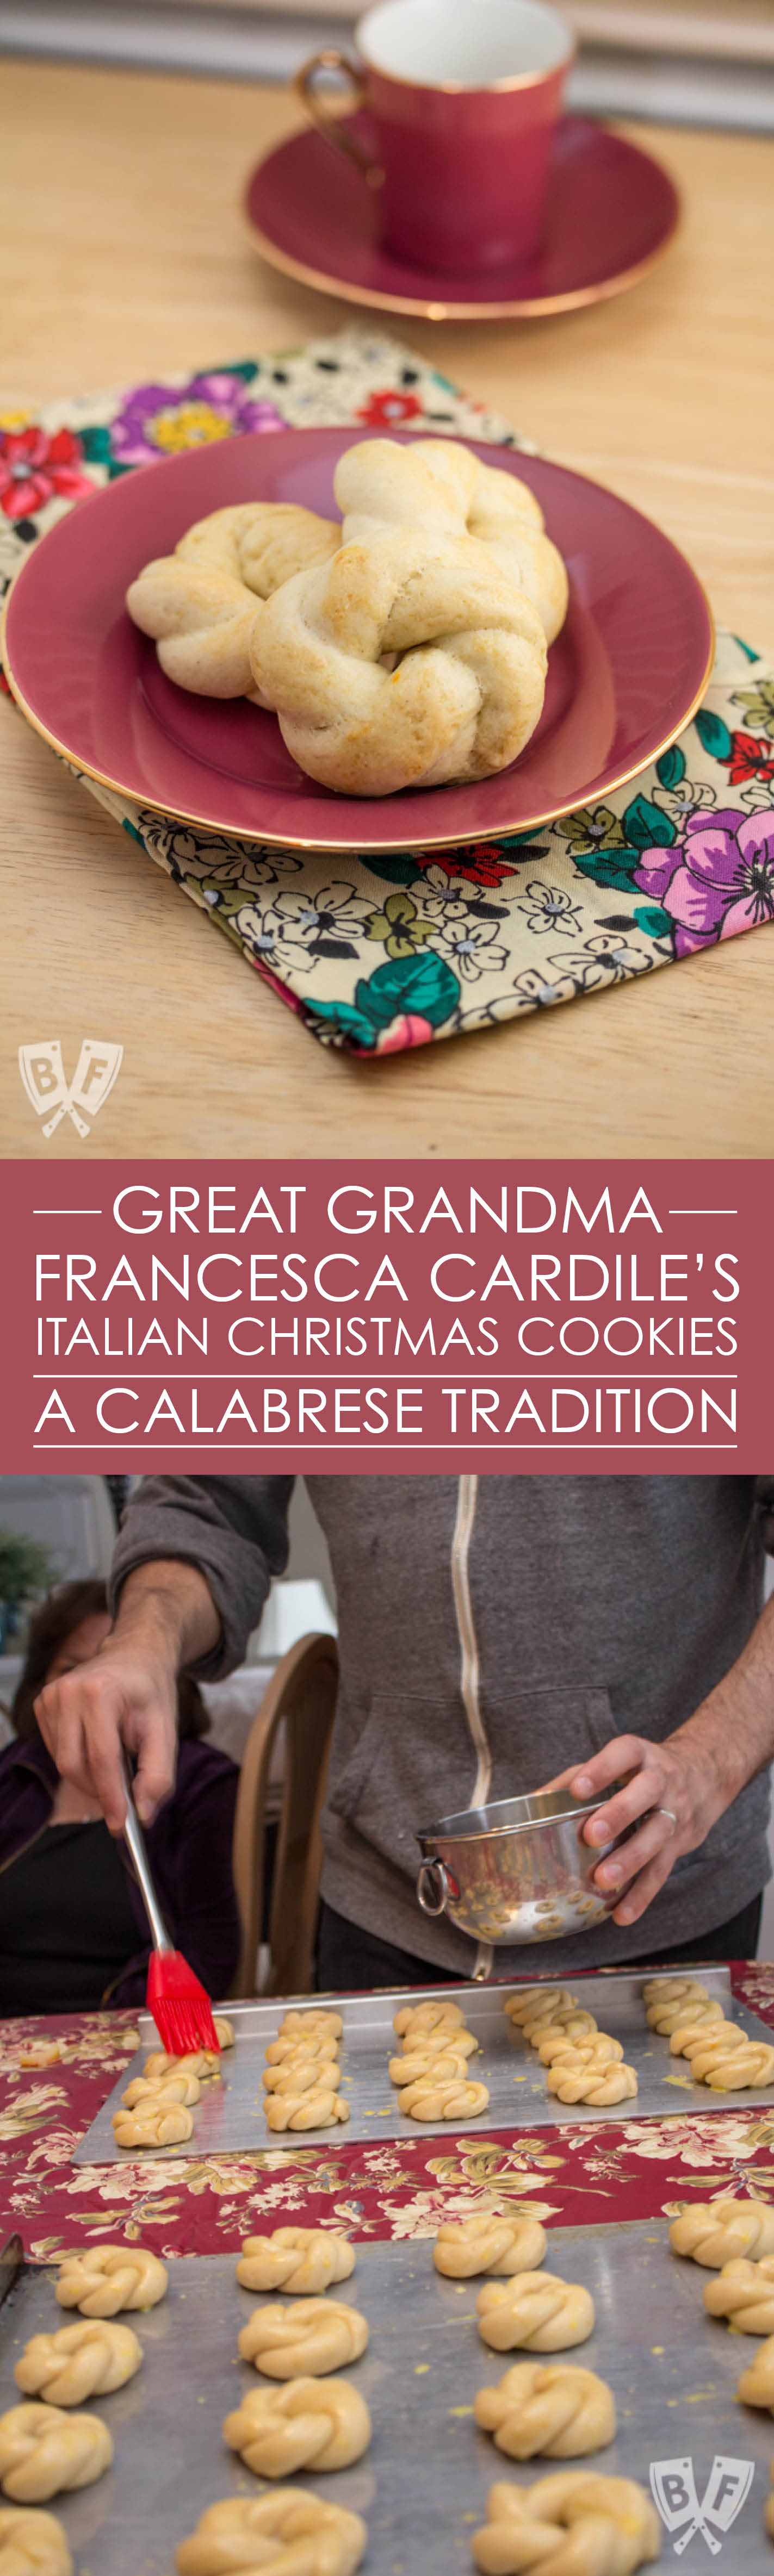 Great Grandma Francesca Cardile's Cookies are an elegant, lightly sweet dessert that are a Calabrese tradition, passed down through the generations and enjoyed annually at Christmas and Easter.